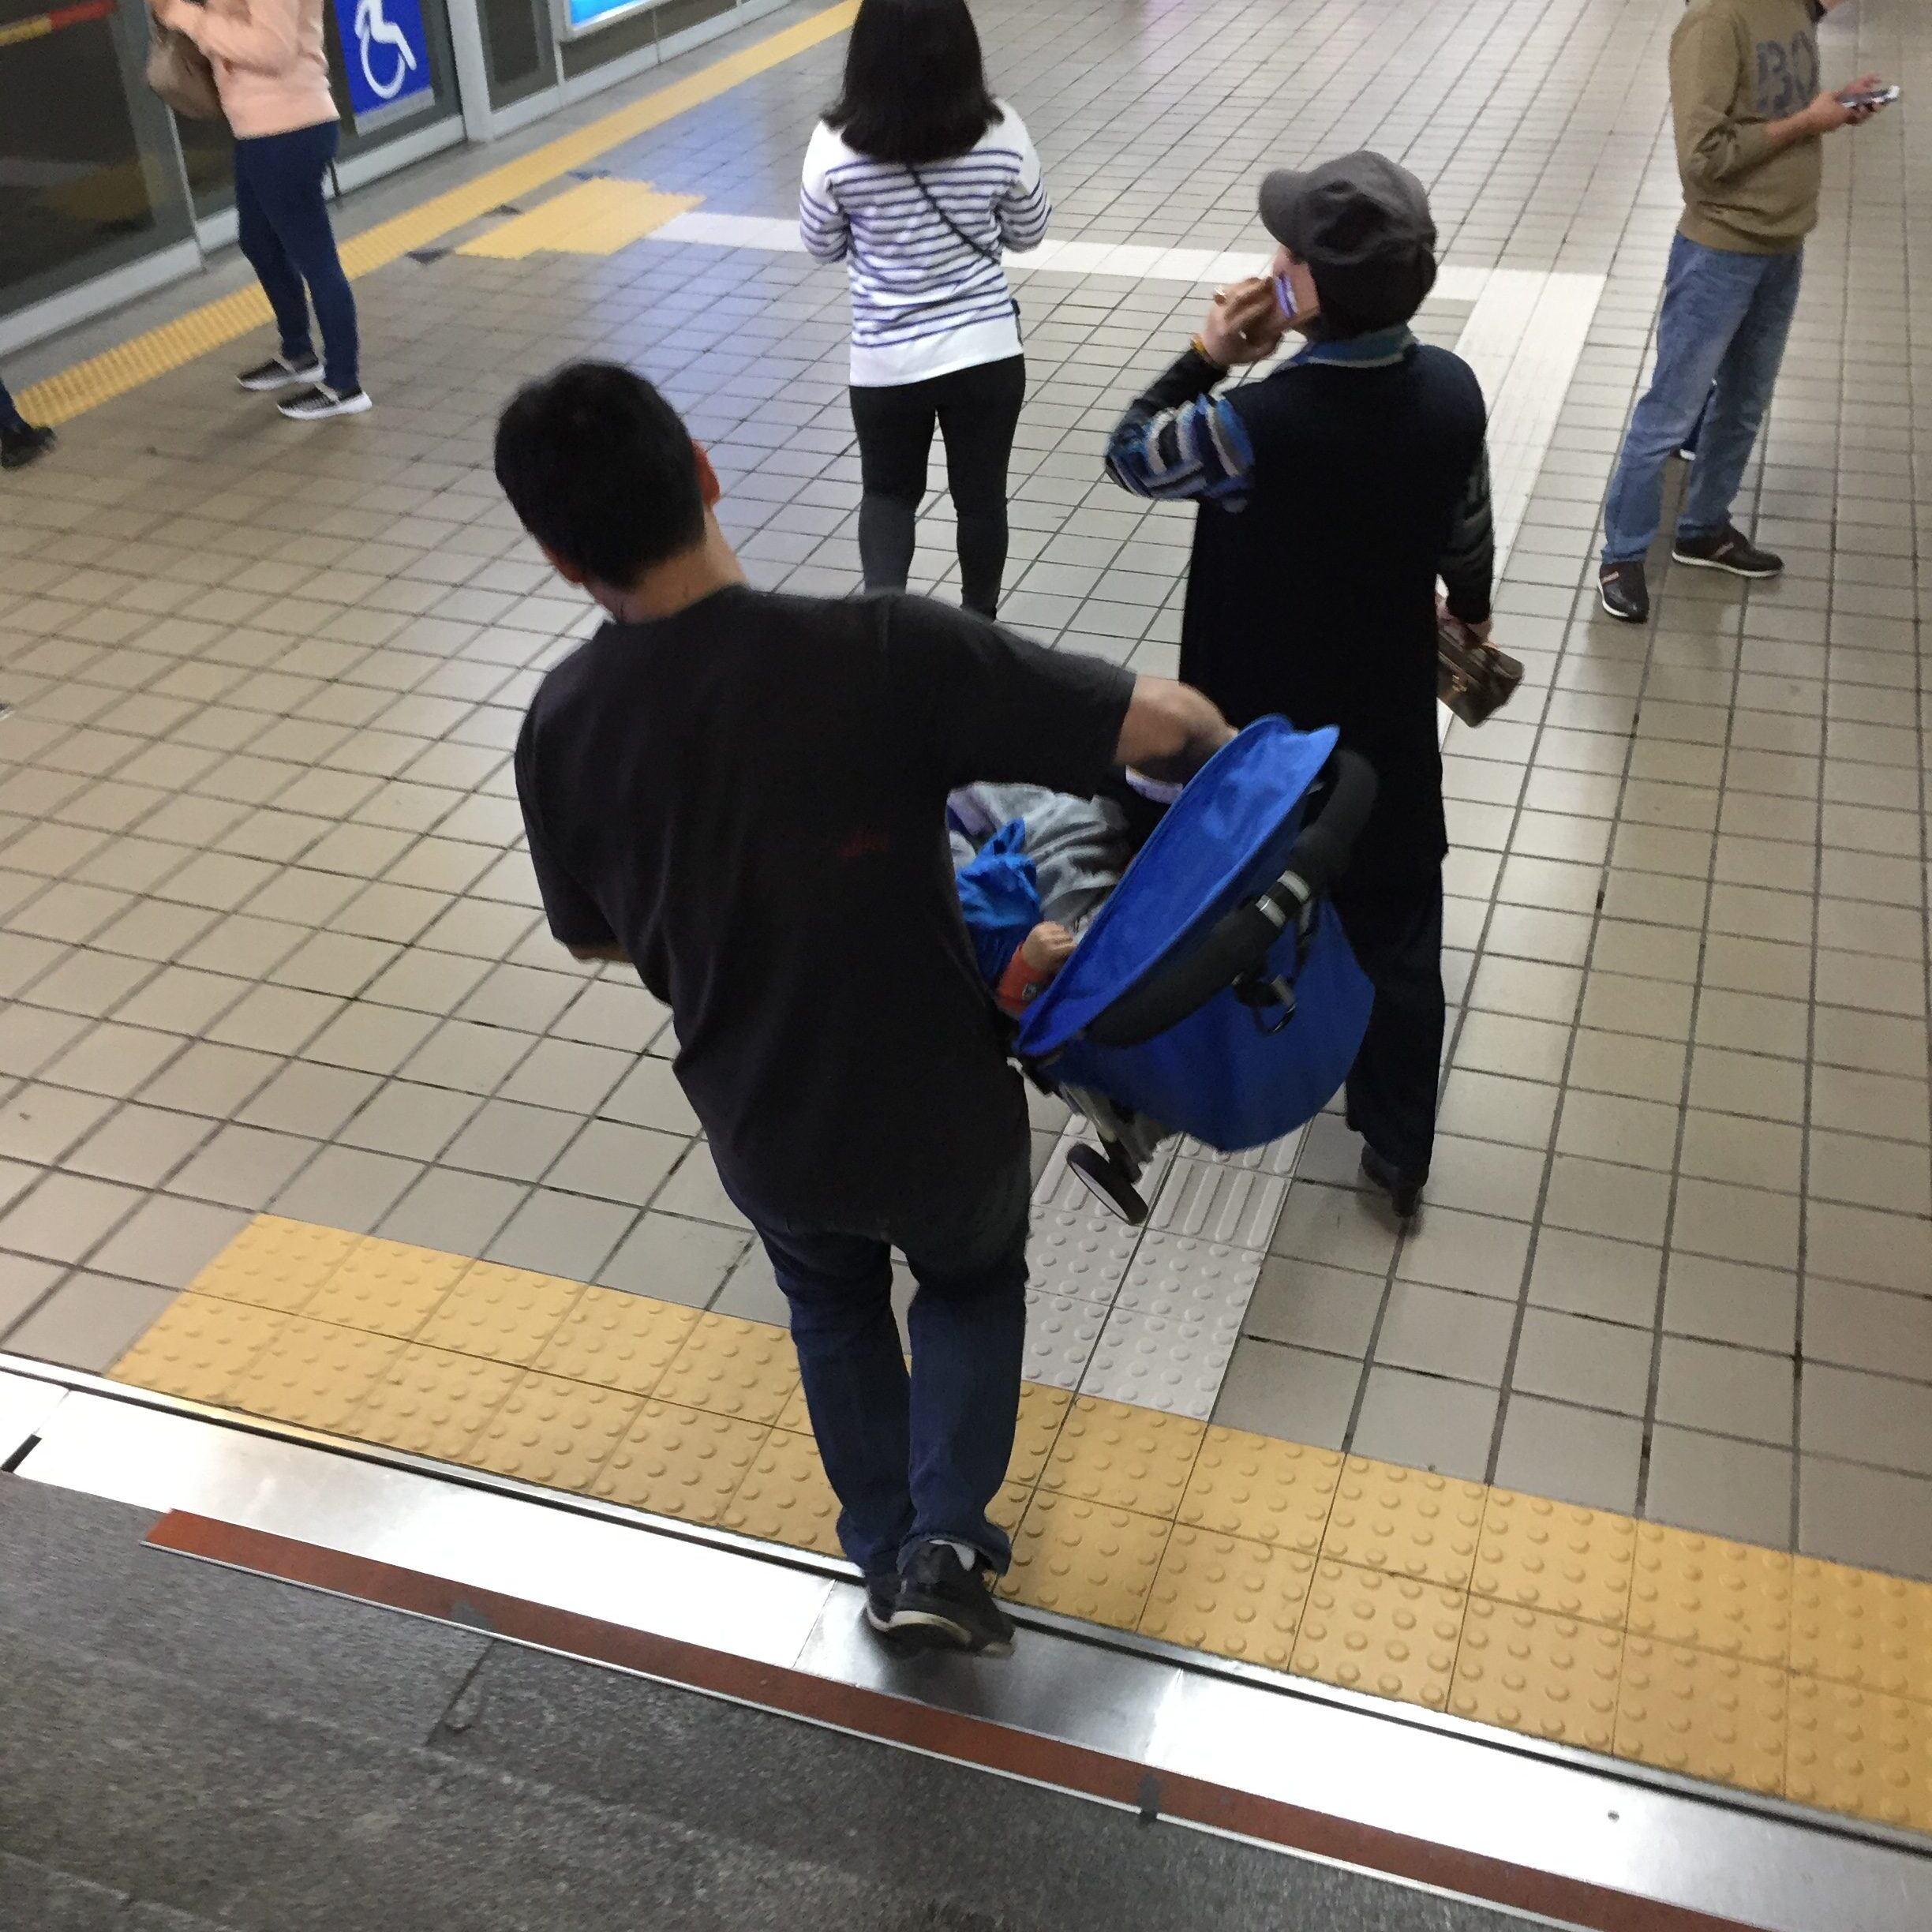 Stroller and prams in Seoul's subways